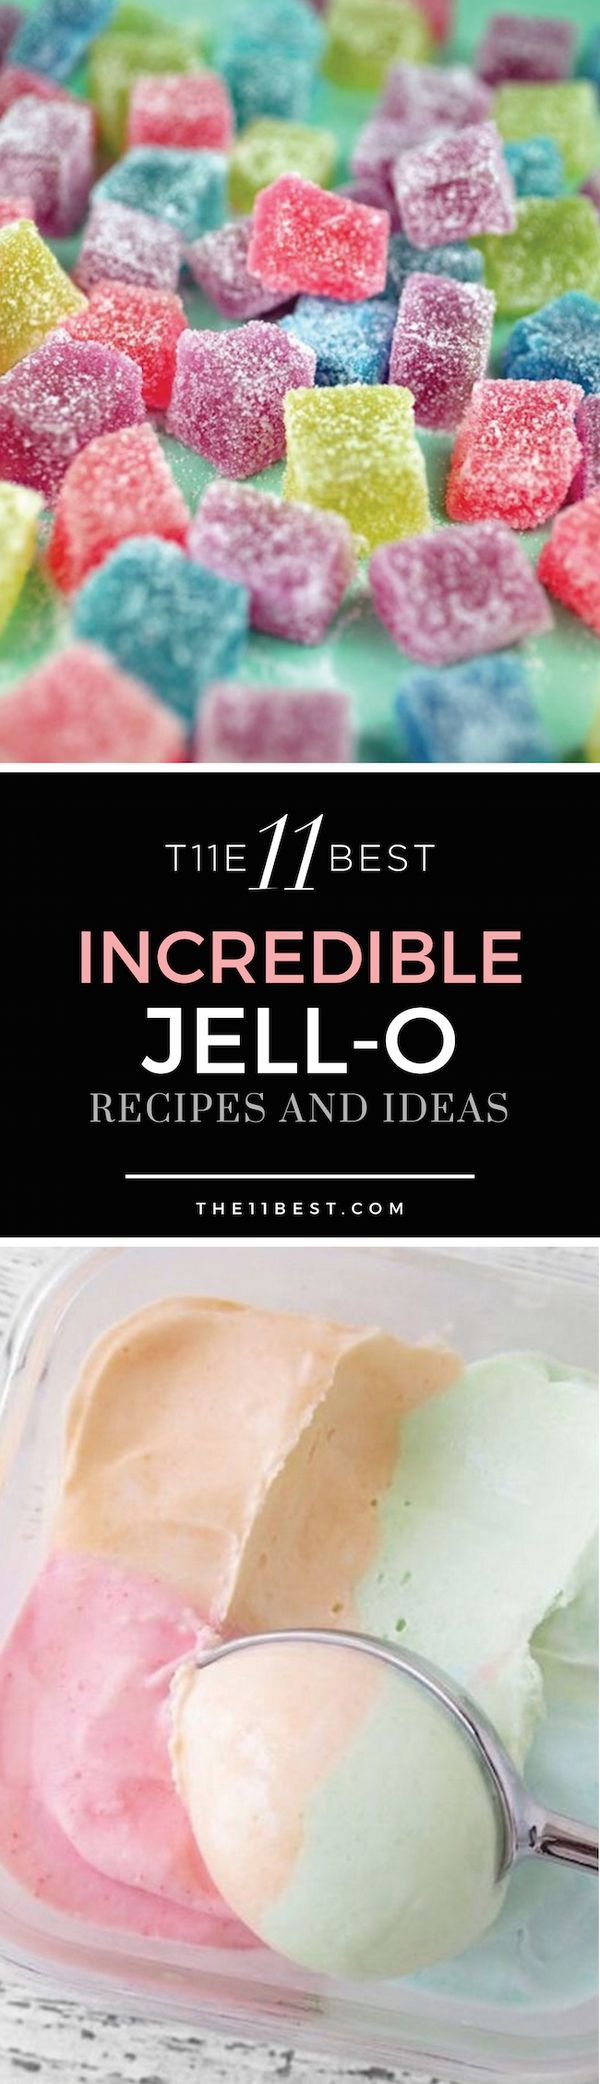 The 11 Best Things to Make with Jello